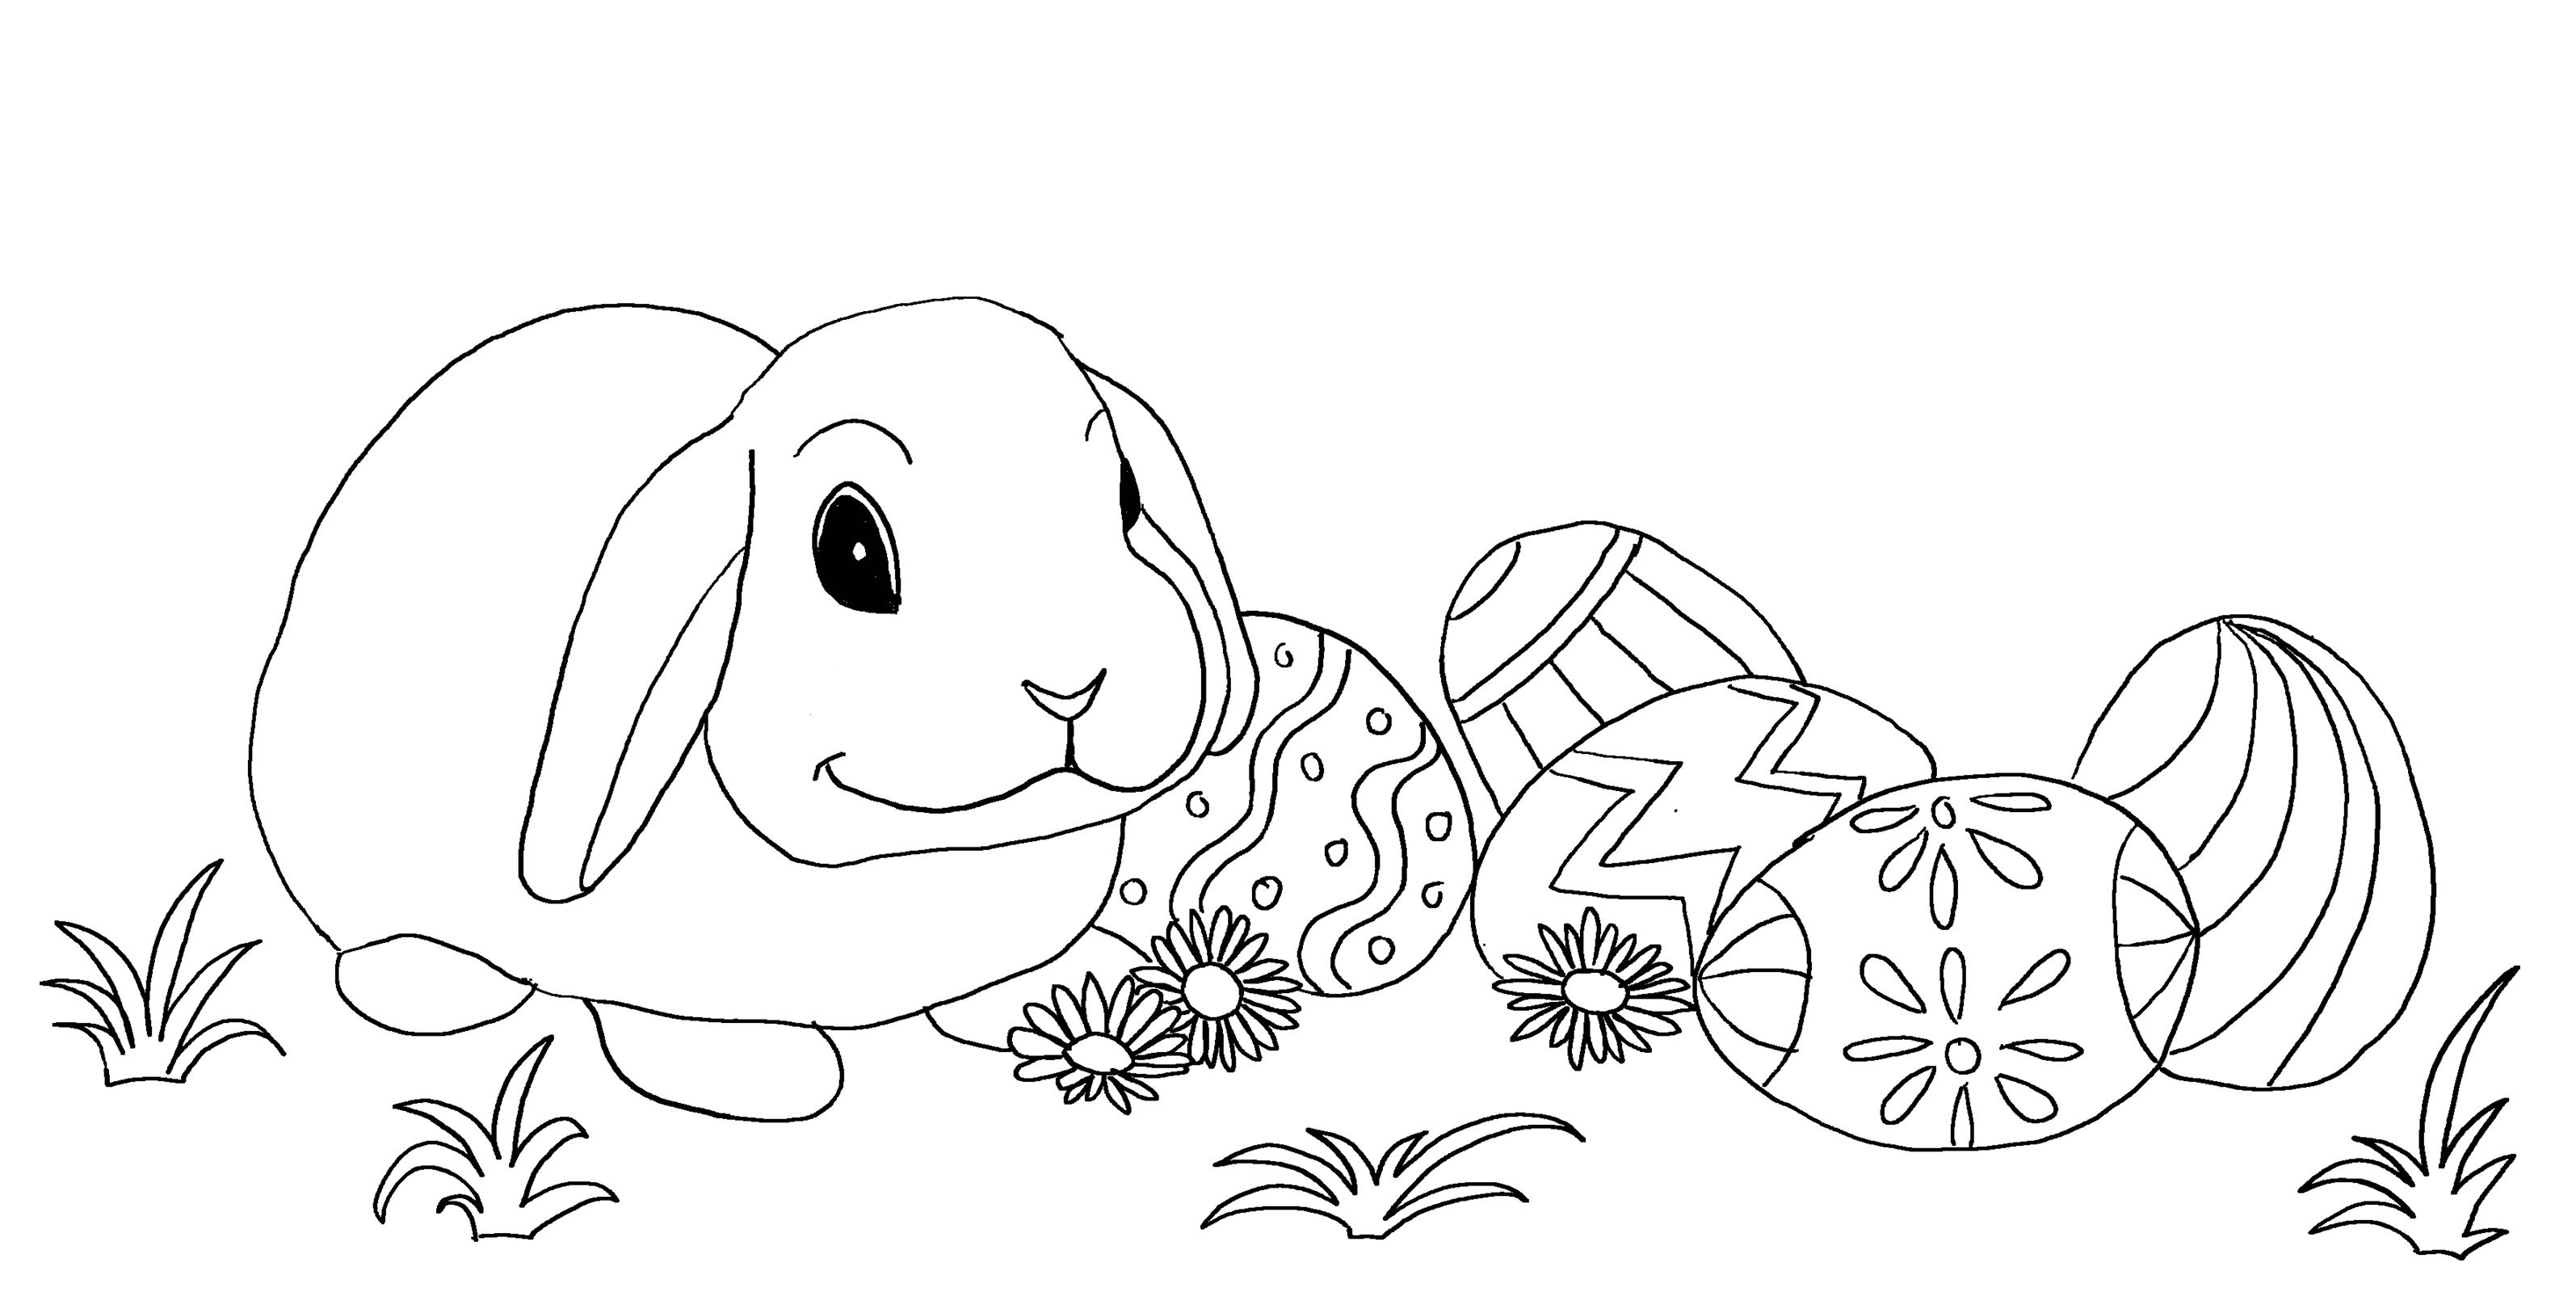 Cute Easter rabbit with many Easter eggs. Coloring page for kids.